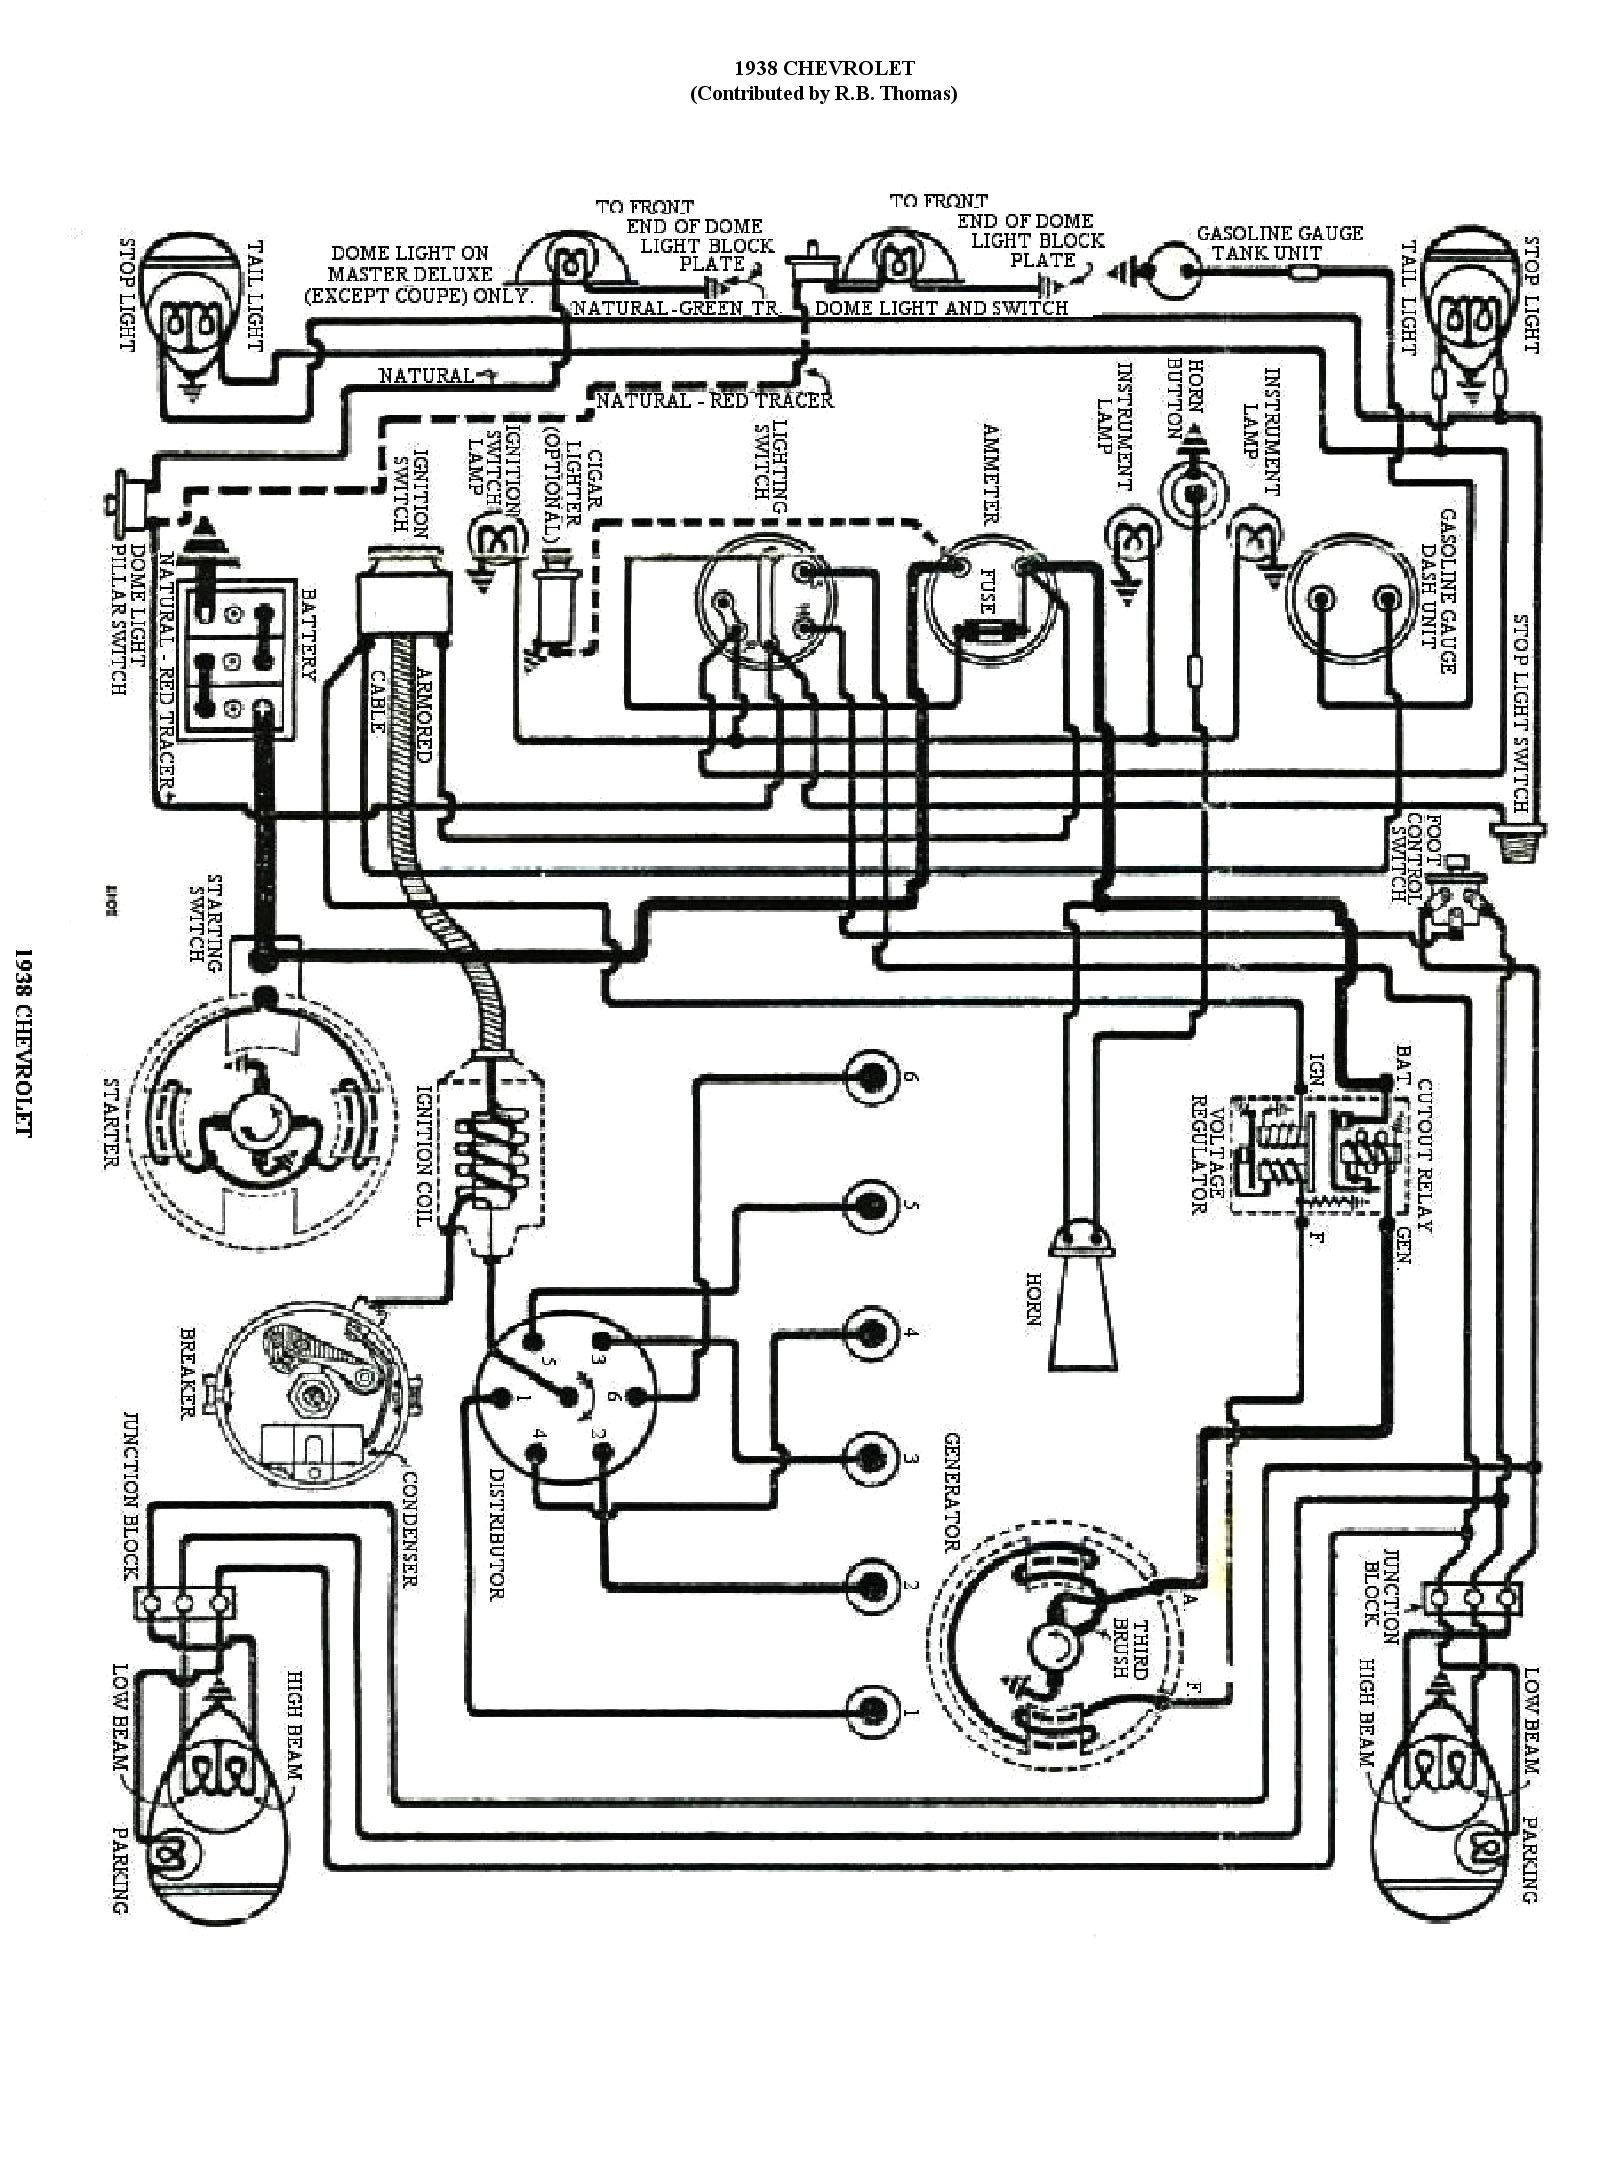 51 oldsmobile wiring diagram